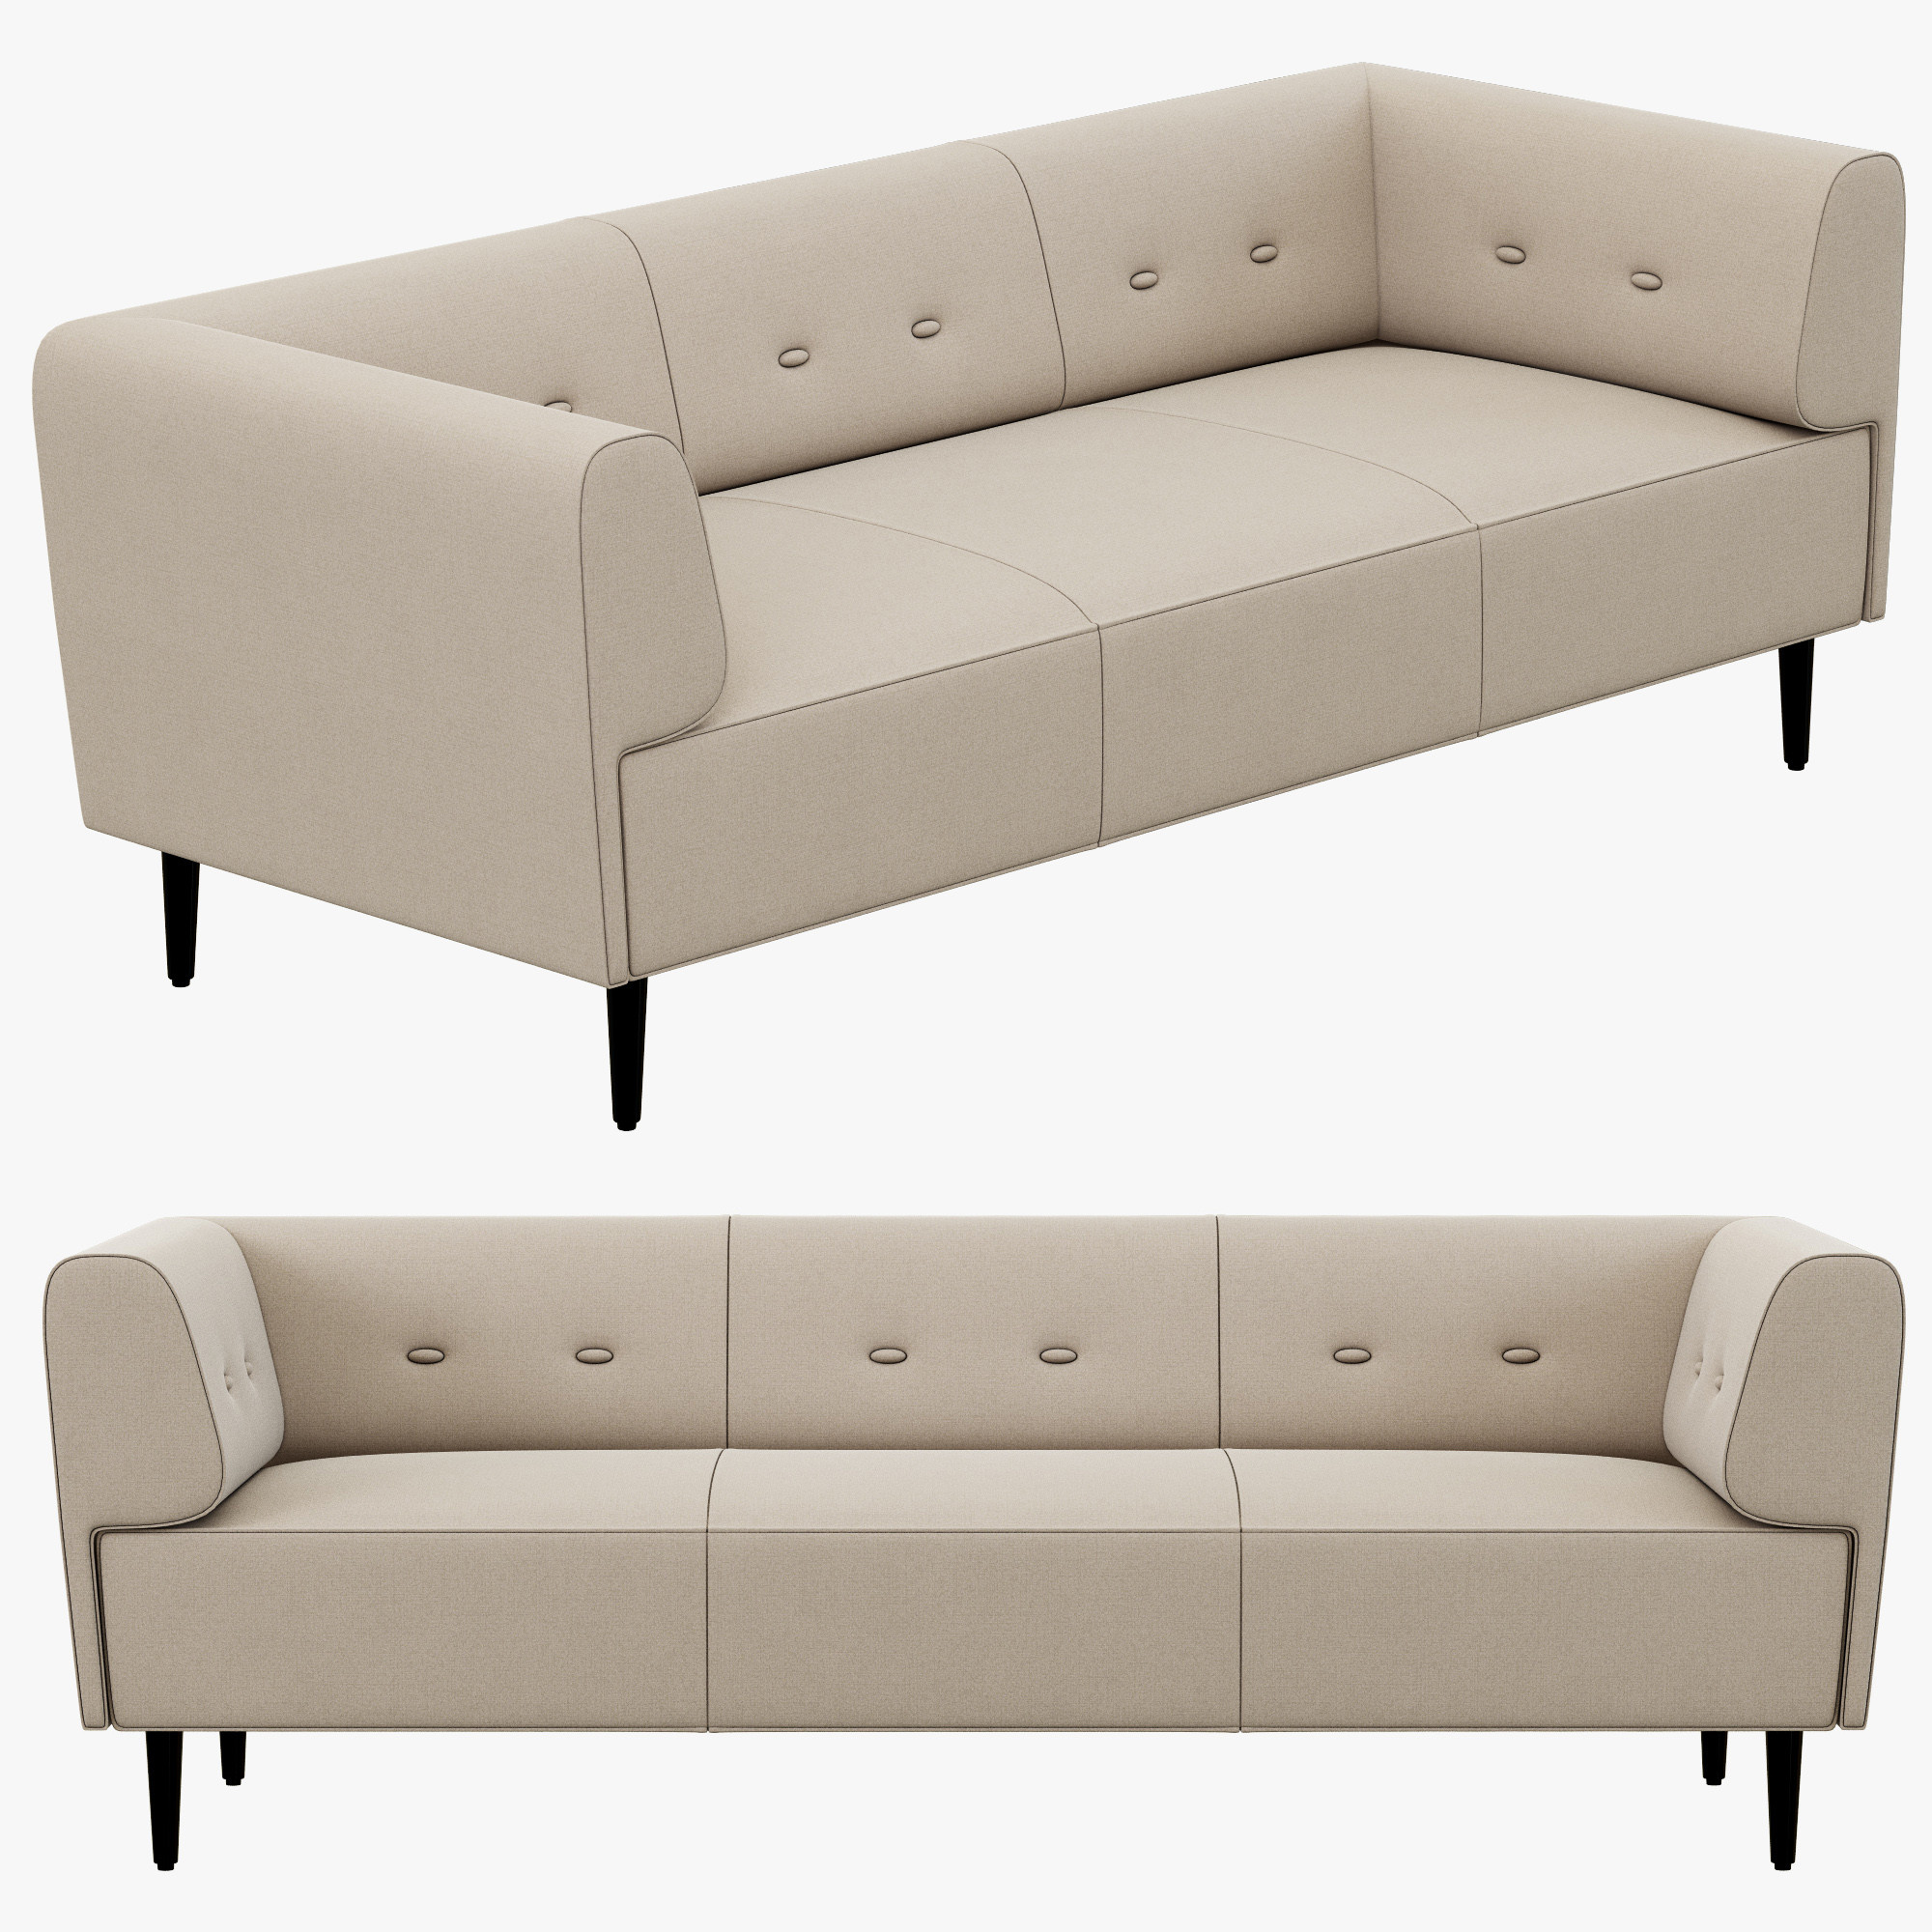 3d boconcept philly sofa. Black Bedroom Furniture Sets. Home Design Ideas